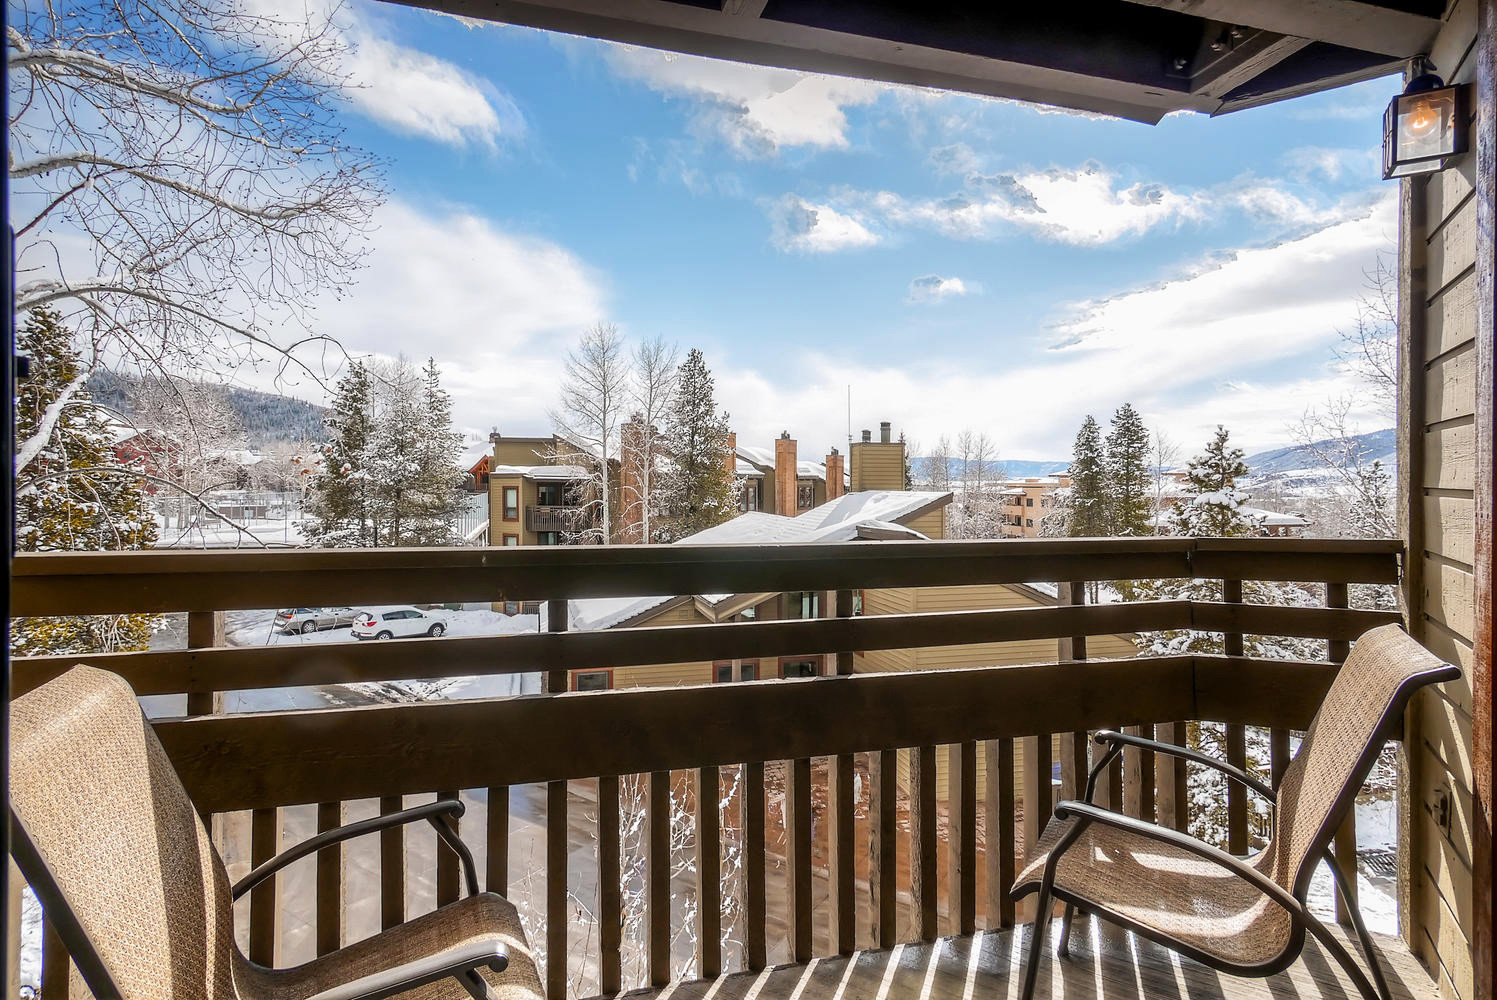 Balcony Lodge Outdoors Scenic views Ski sky property building home house porch cottage wooden outdoor structure